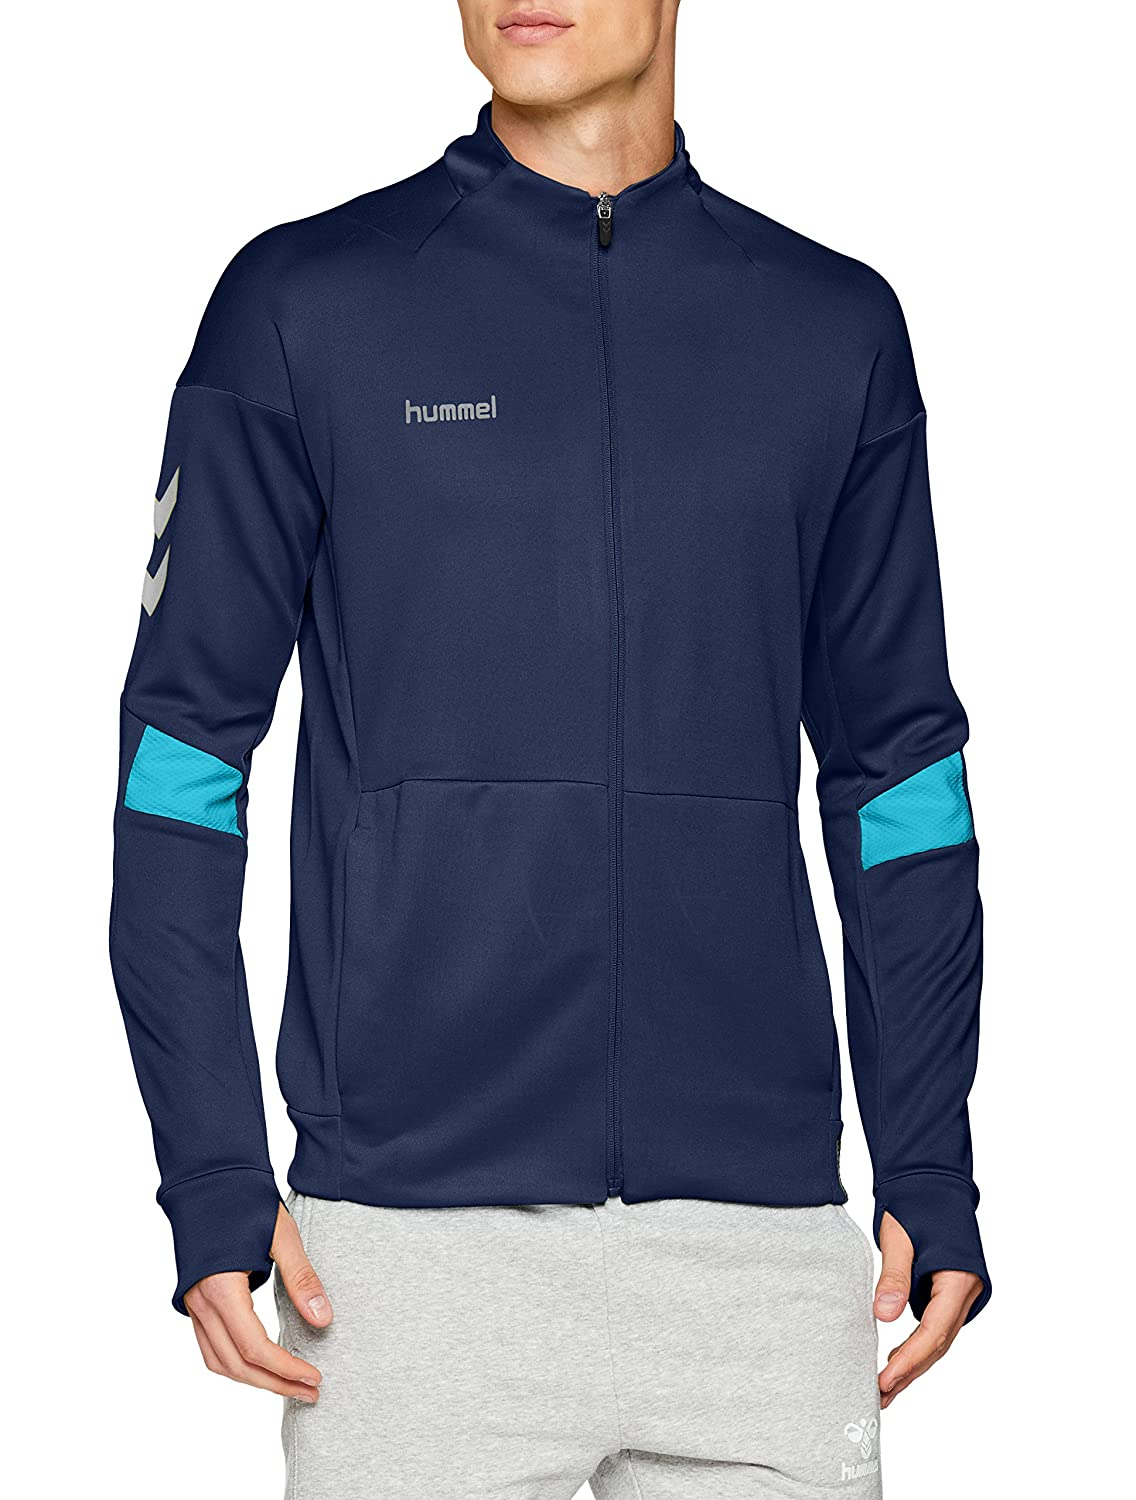 hummel Tech Move Poly Zip Chaqueta, Hombre, Saragossa Sea, XXX-Large